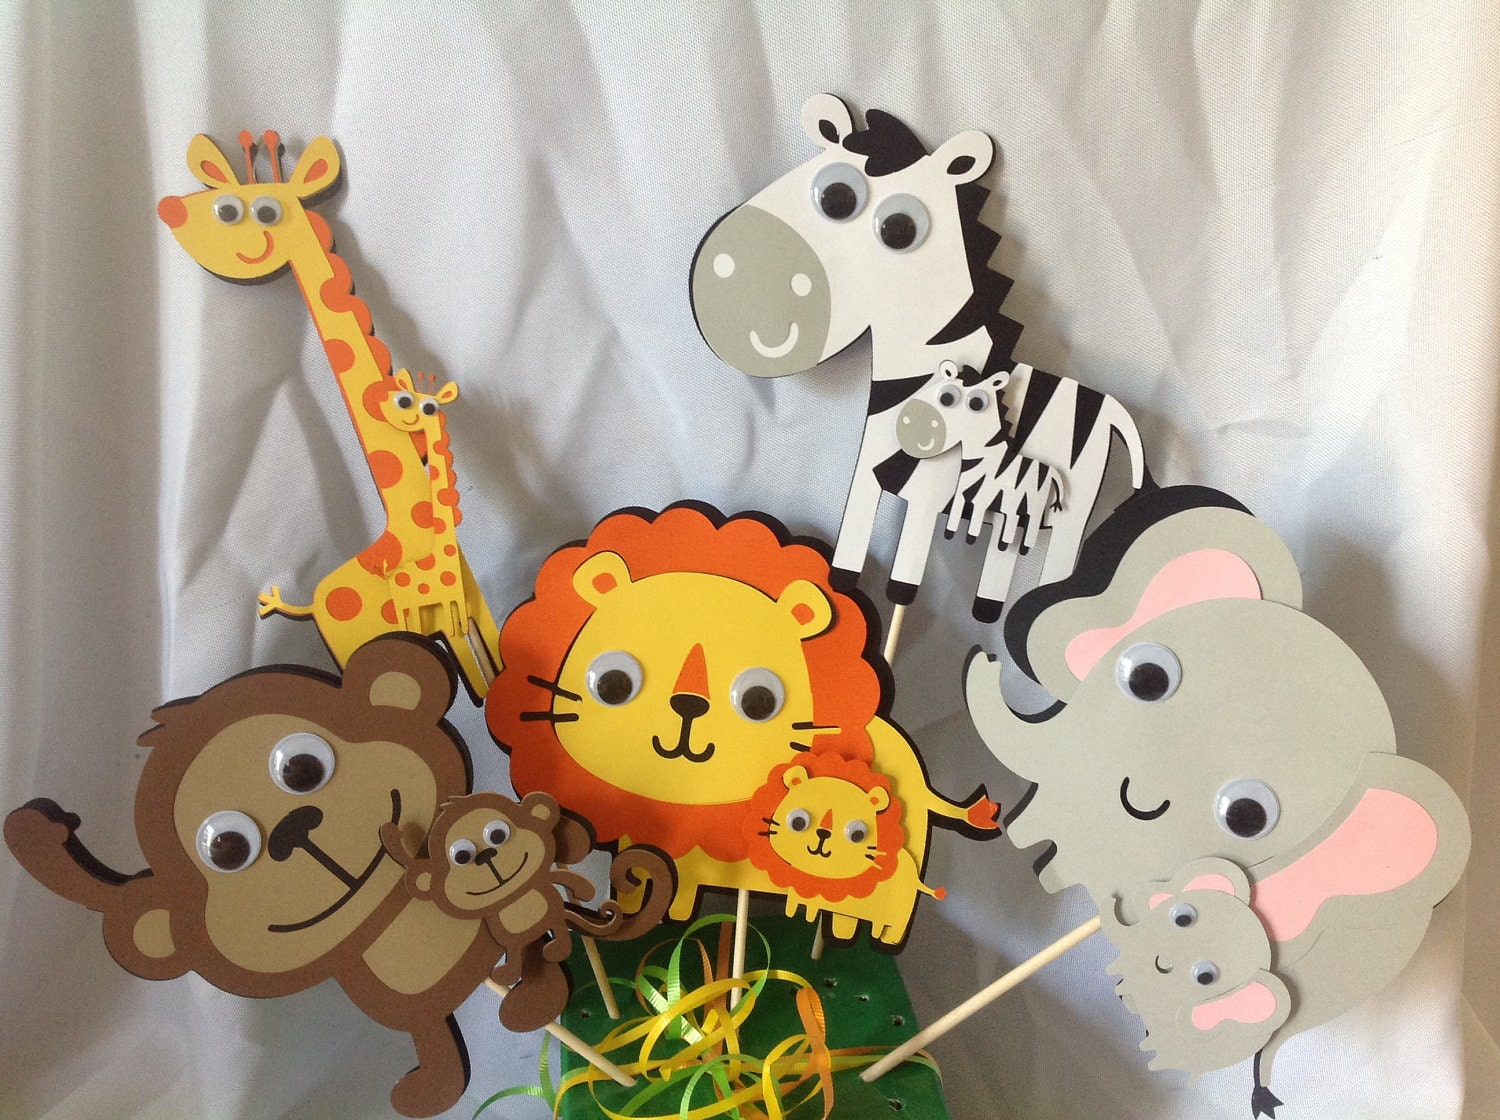 Jungle baby shower by dreamcometrueparties on etsy for Baby shower jungle theme decoration ideas